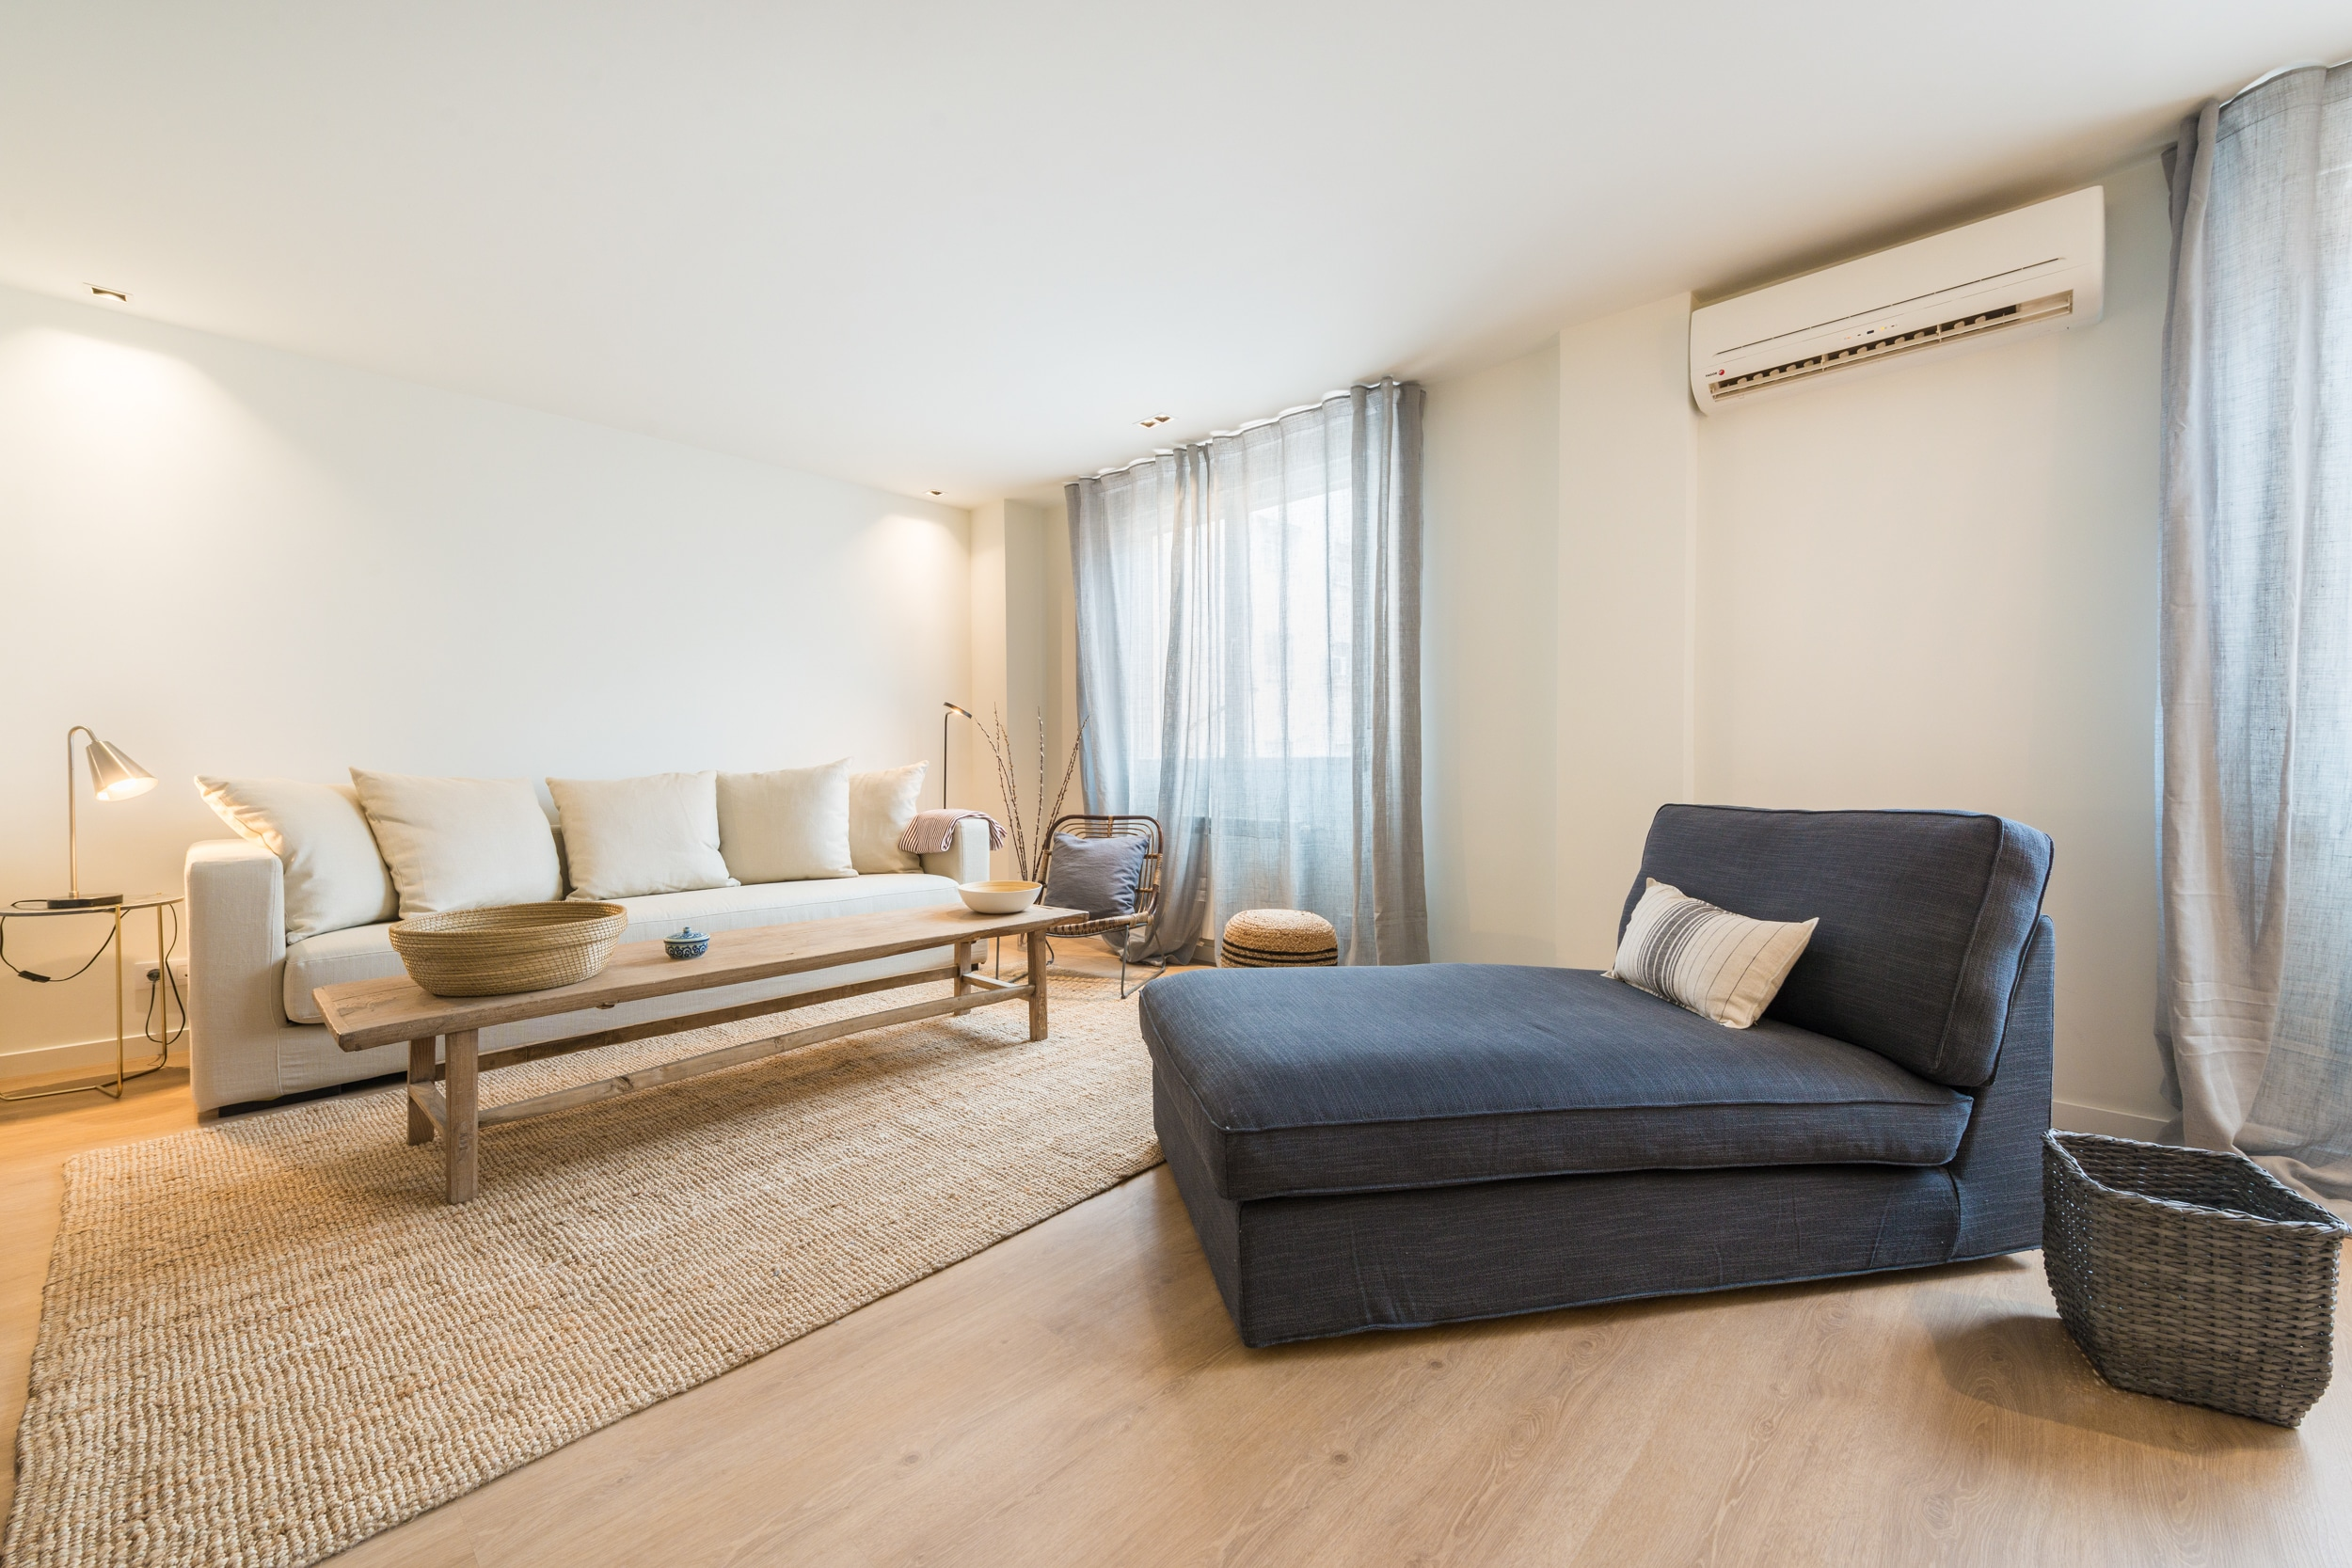 Property Image 2 - Designer Loft Next to Paseo del Prado for 4 people